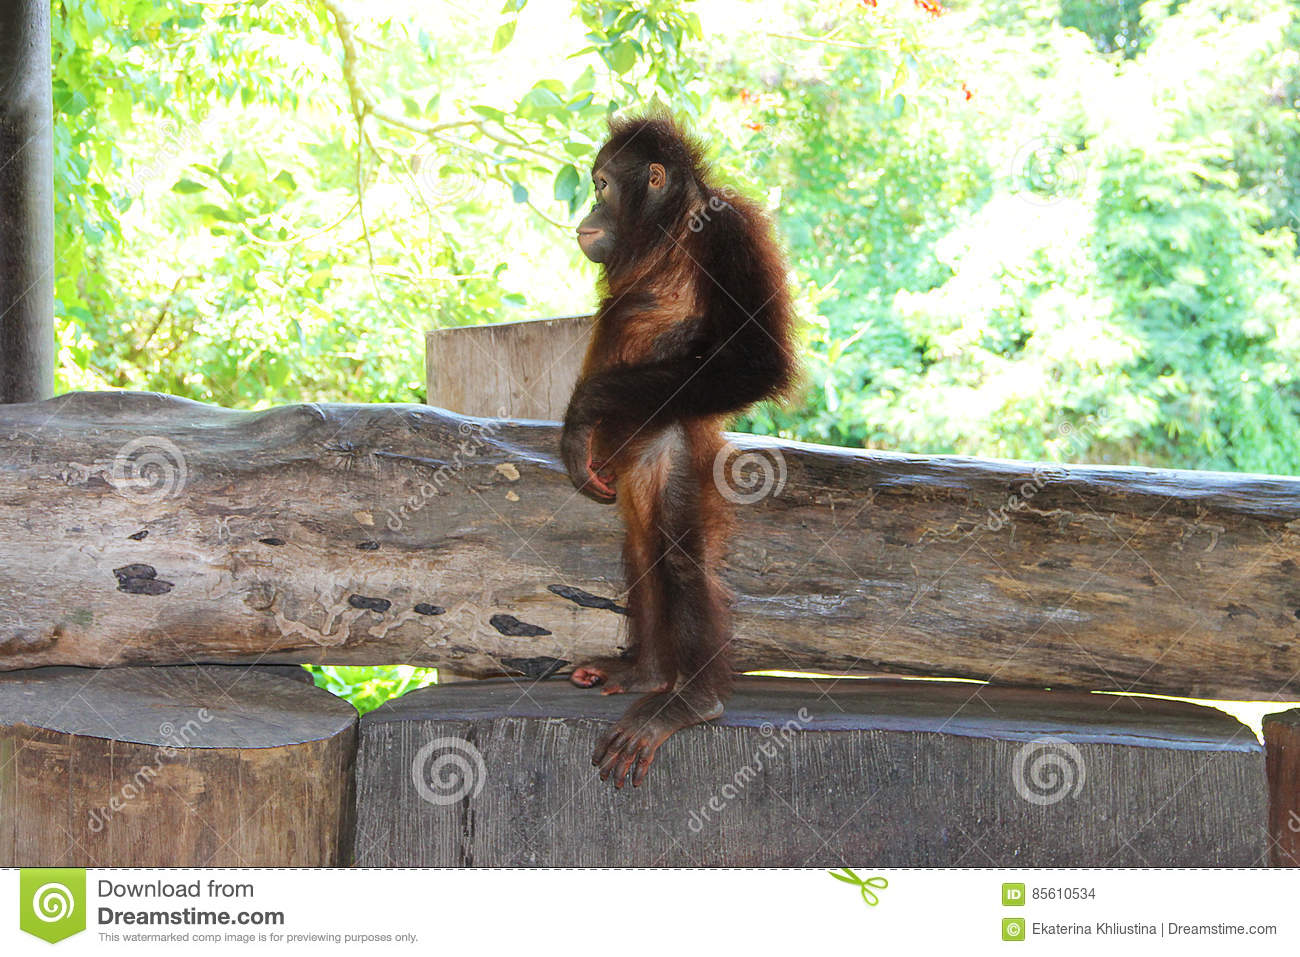 Young orangutan standing on a wooden bench in the profile. Picture taken in a zoo on the island of Bali